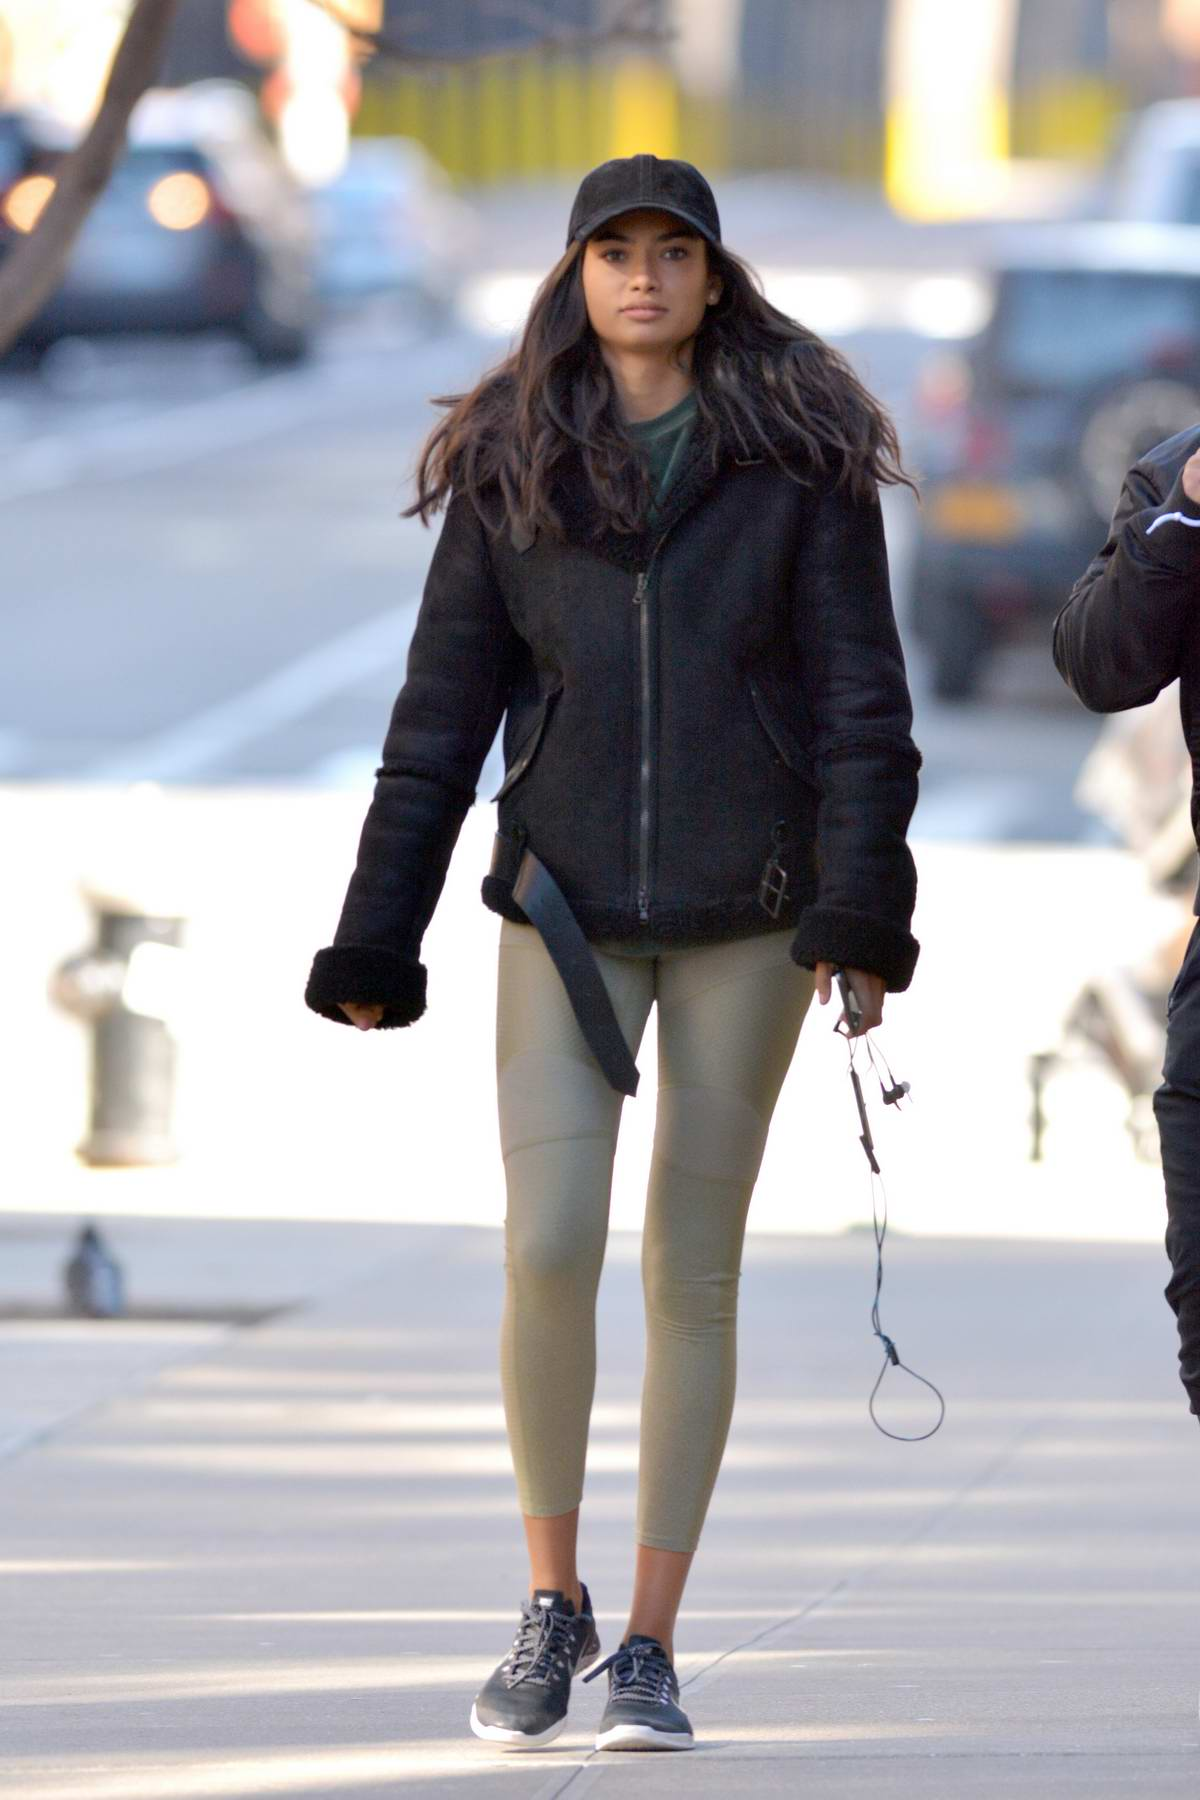 Kelly Gale Winter Pics - Kelly Gale Winter Pics